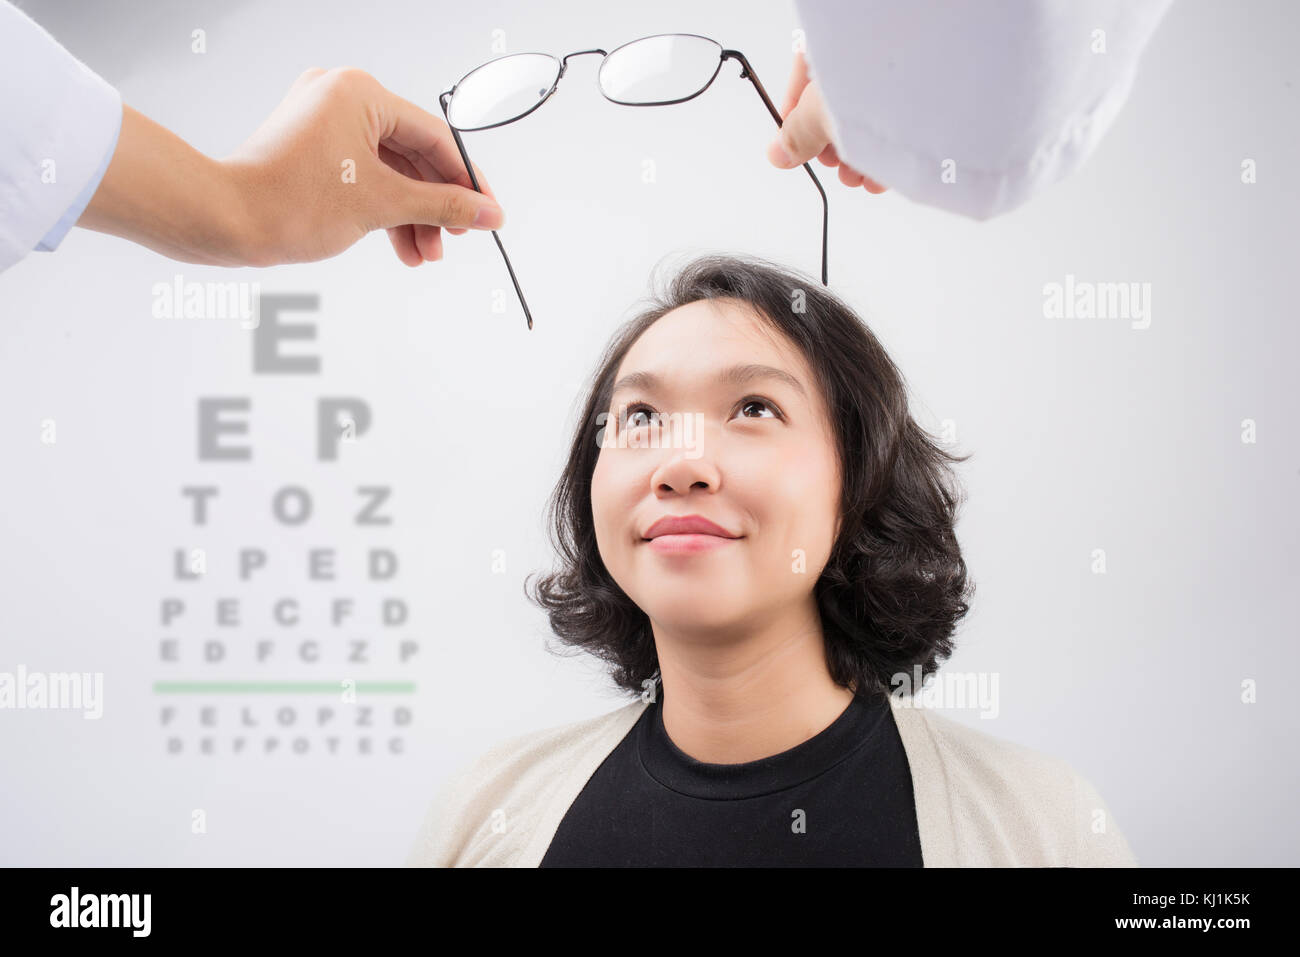 New glasses. Optometrist giving asian woman eyeglasses to try - Stock Image